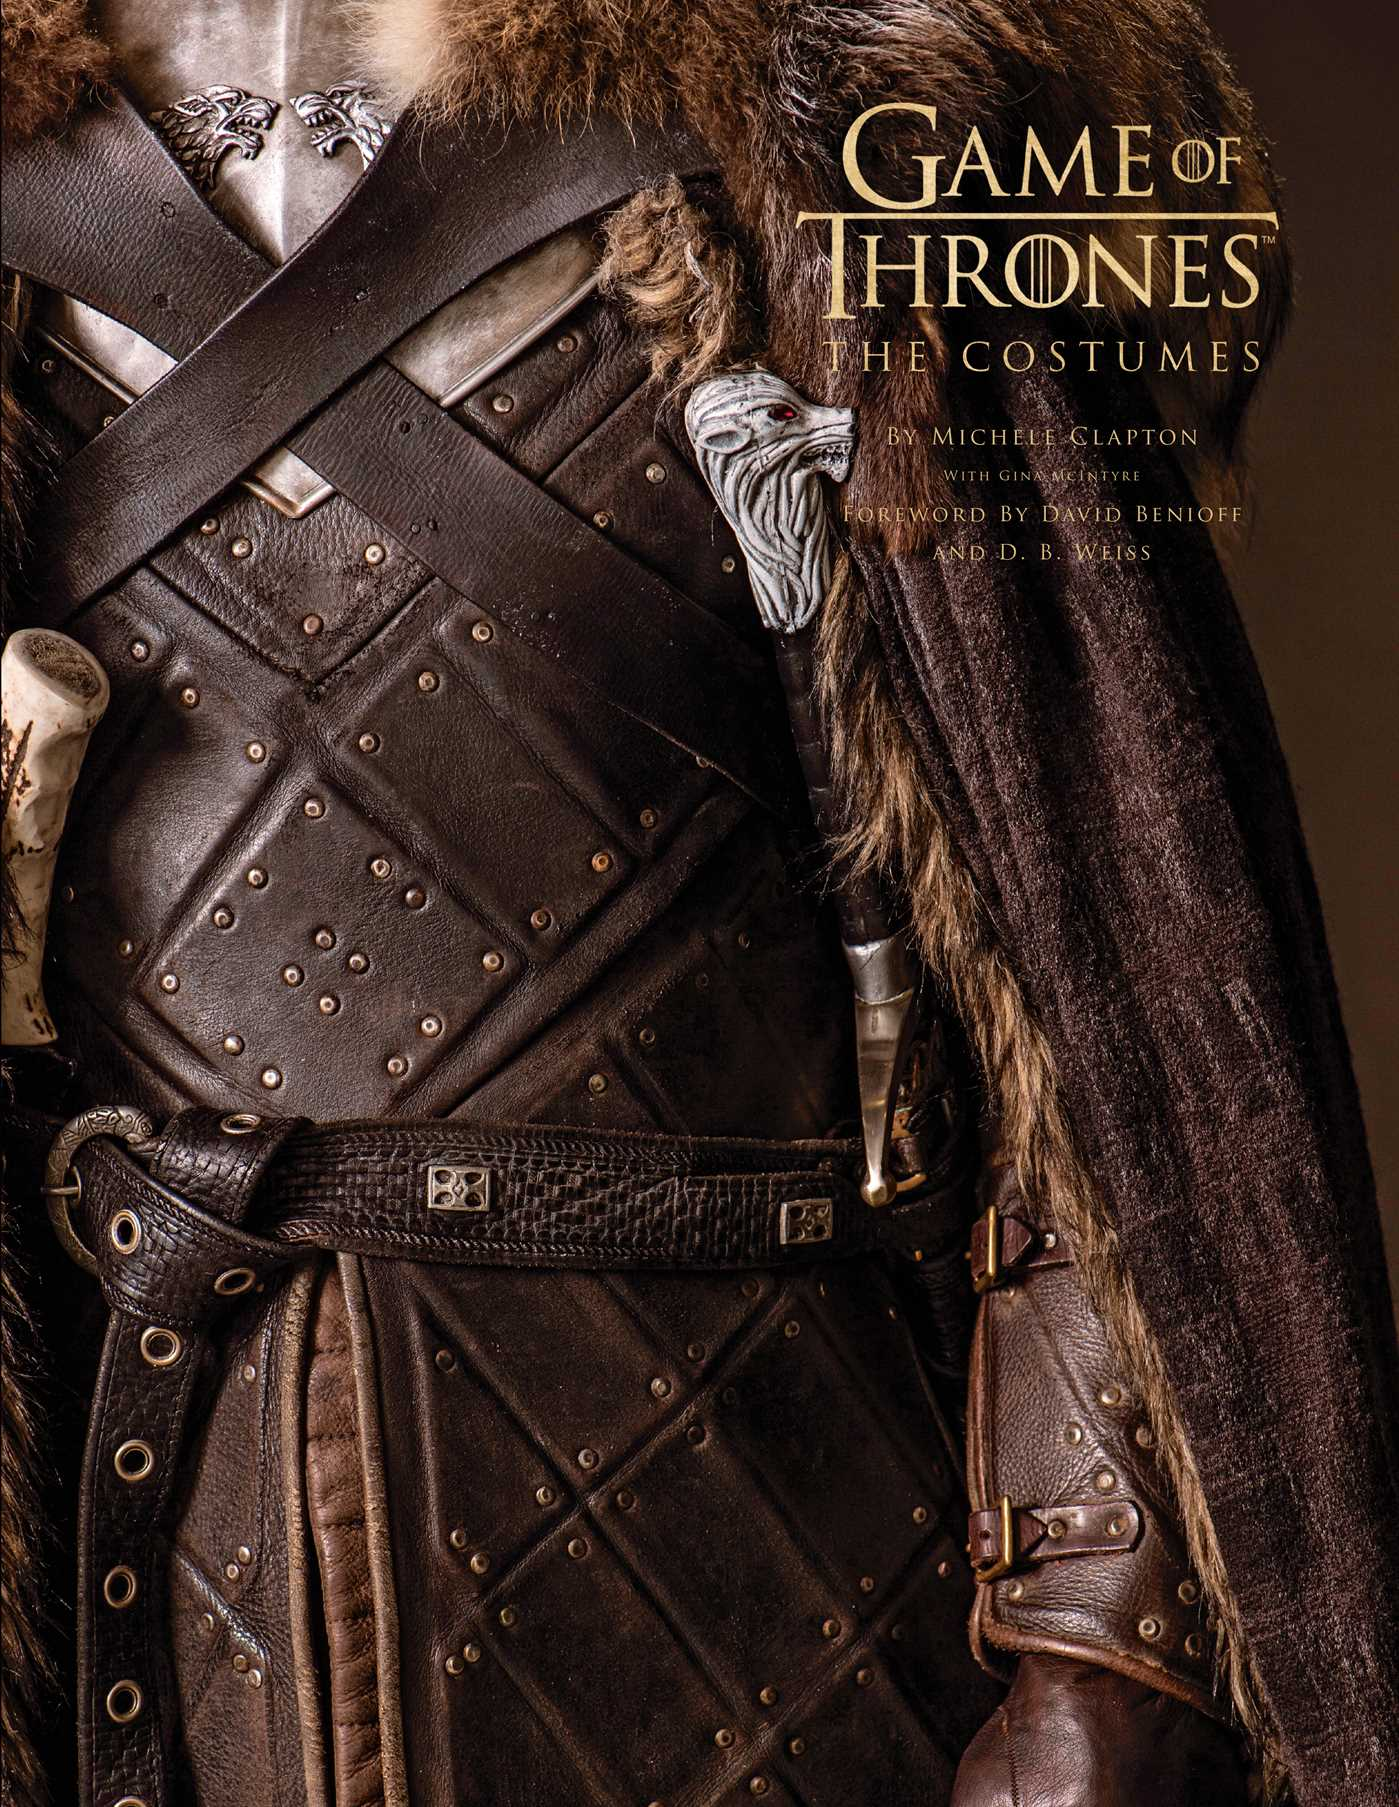 Game of Thrones: The Costumes, the official book from Season 1 to Season 8 by David Benioff, D.B. Weiss, Michele Clapton, Gina McIntyre